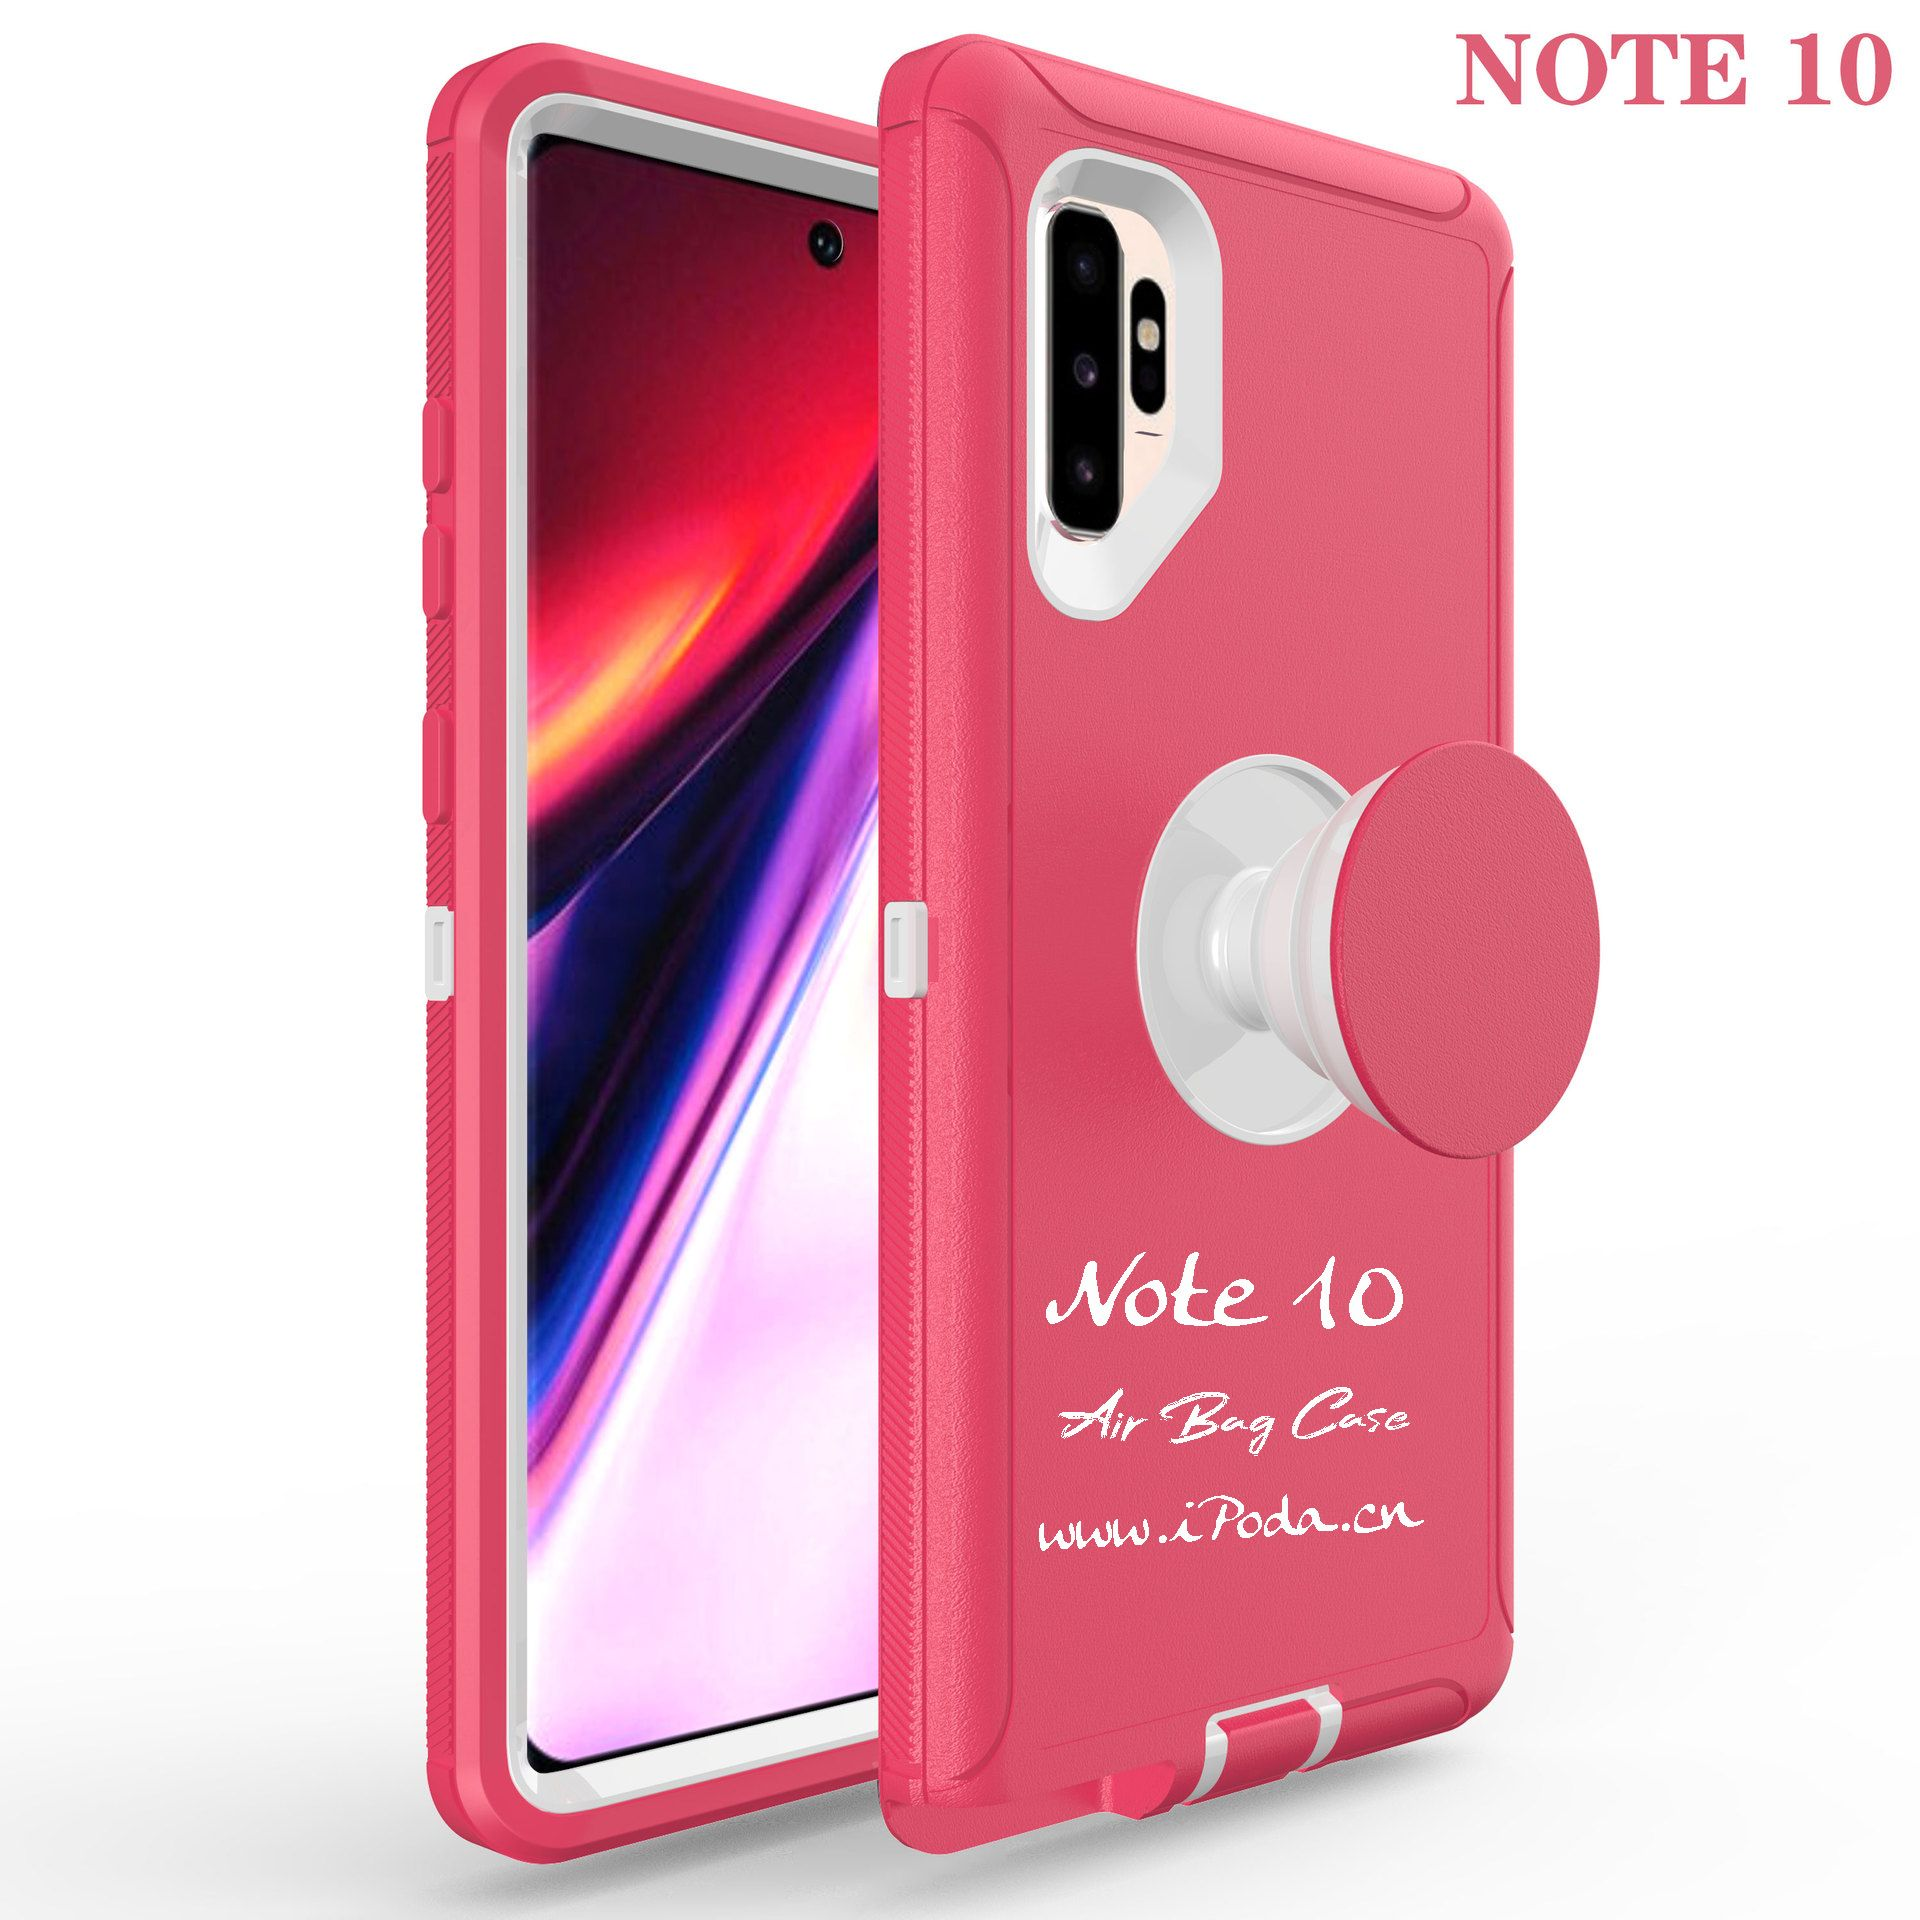 Samsung Note 10 case